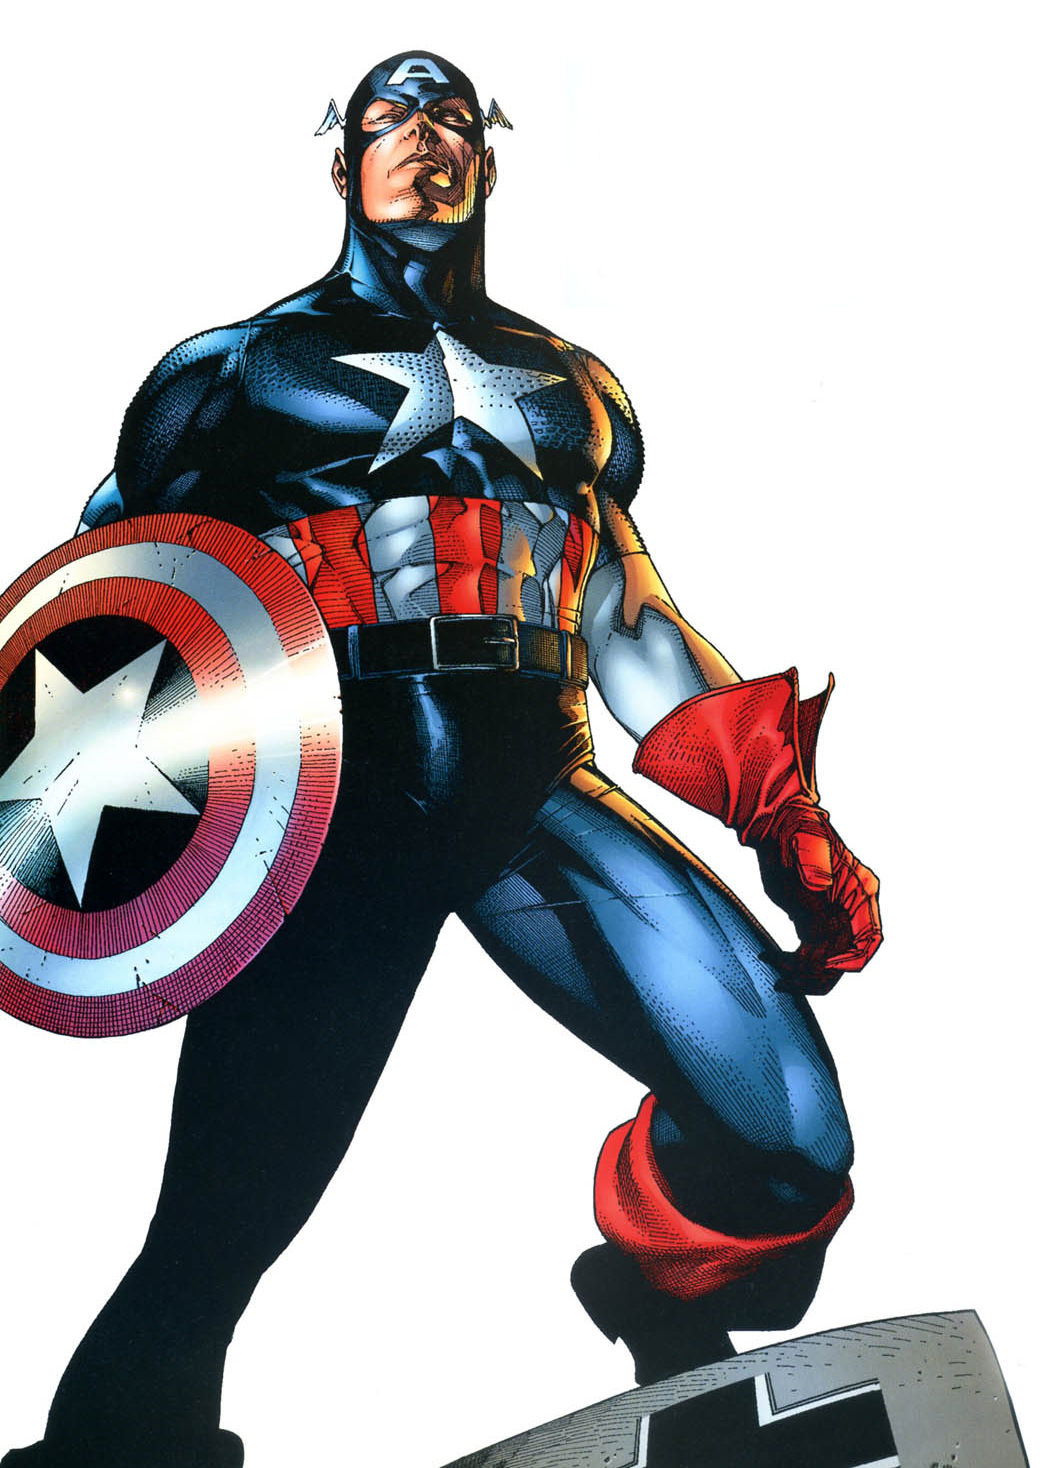 steve rogers captain america x men wiki wolverine marvel comics origins. Black Bedroom Furniture Sets. Home Design Ideas